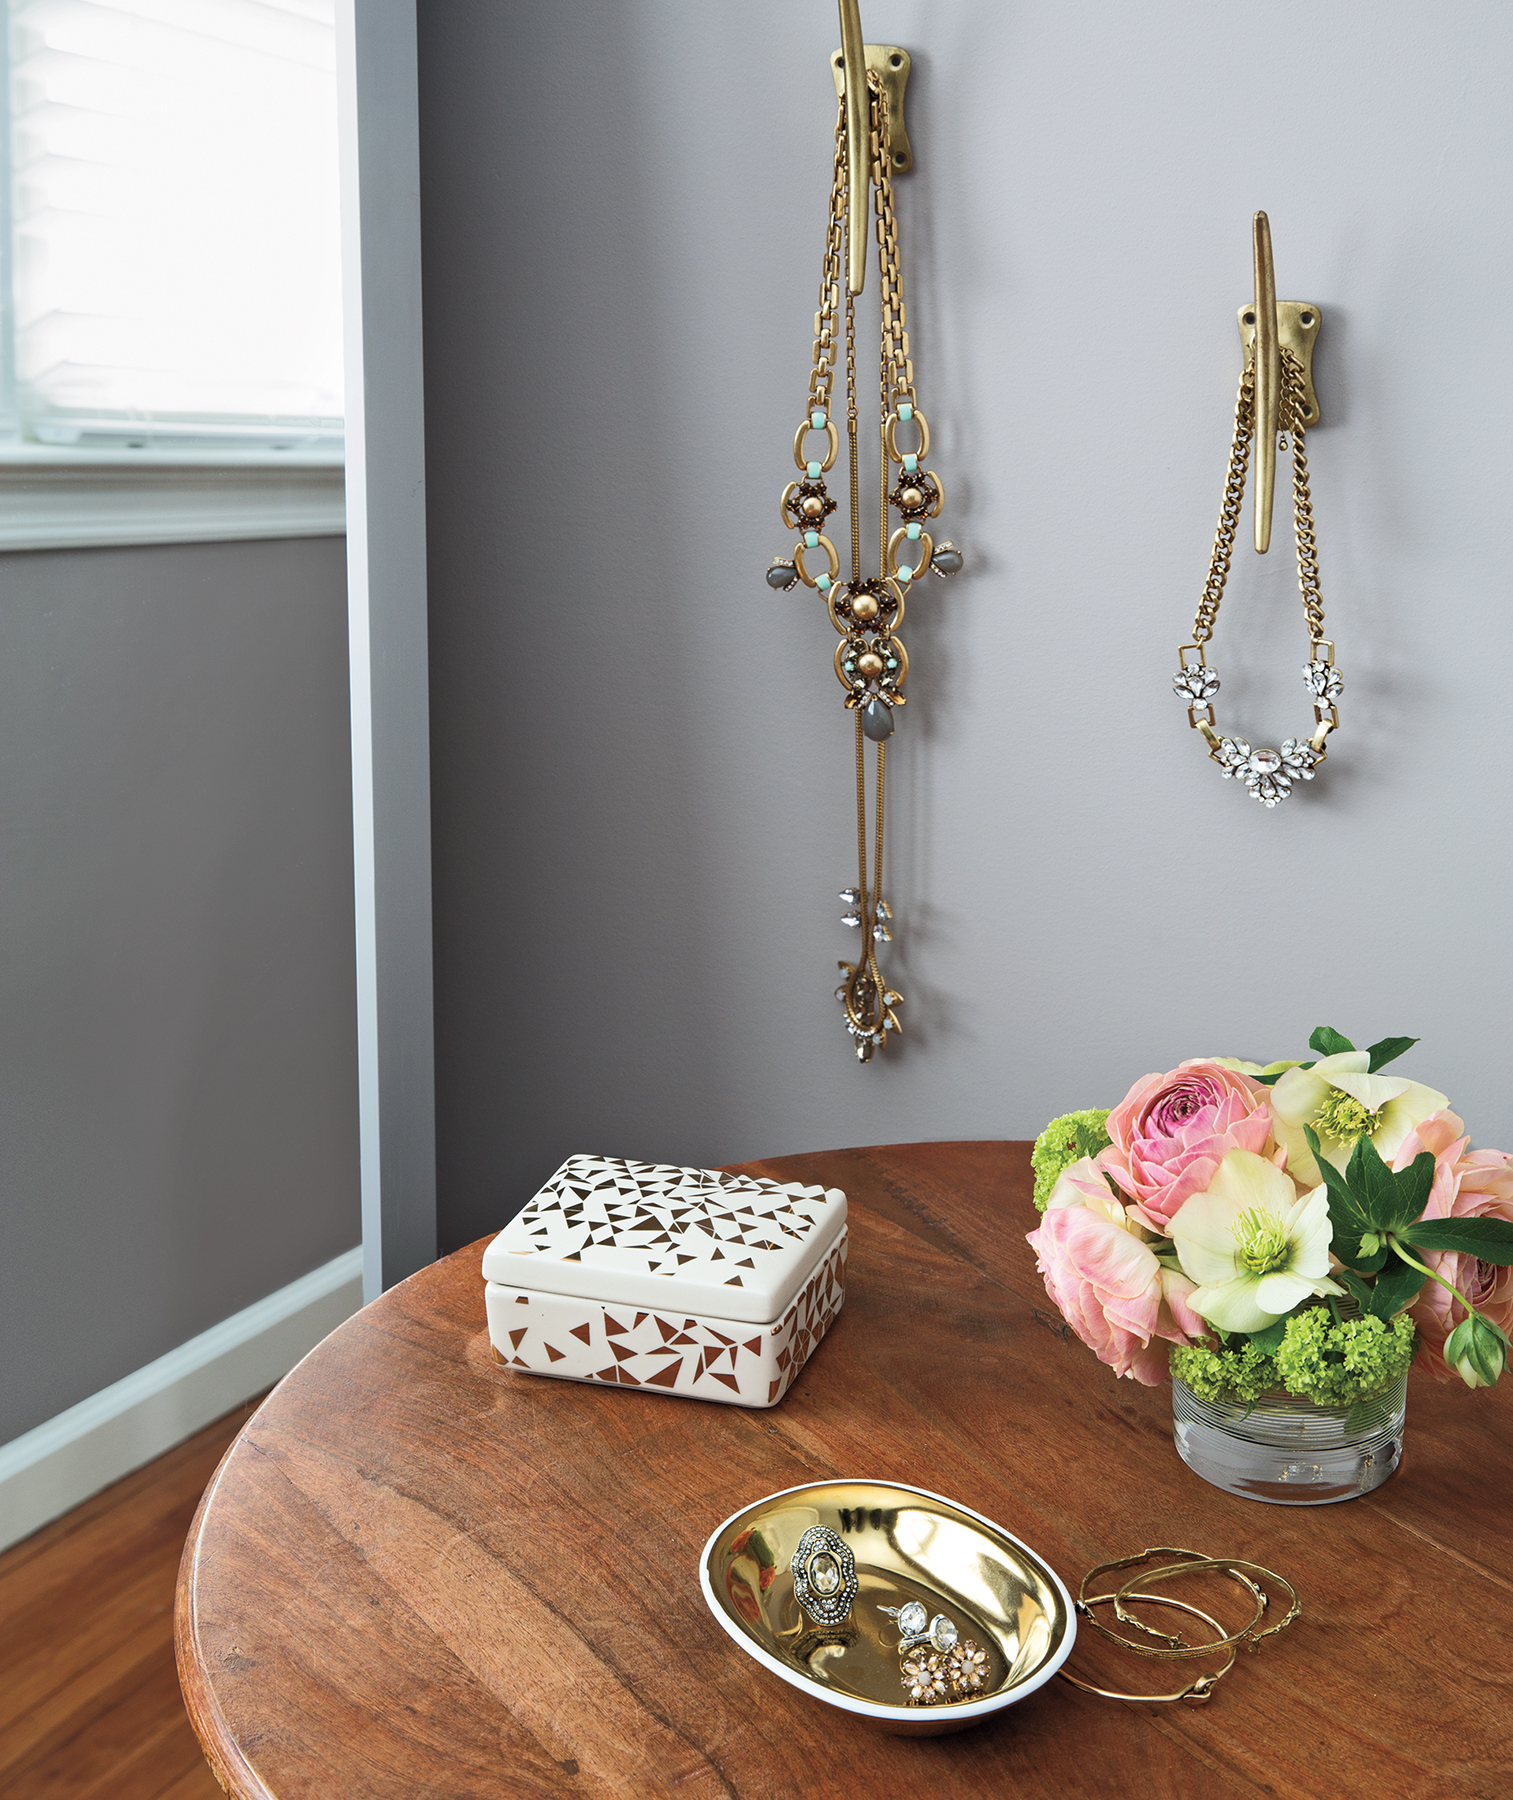 Jewelry and accessories on hooks